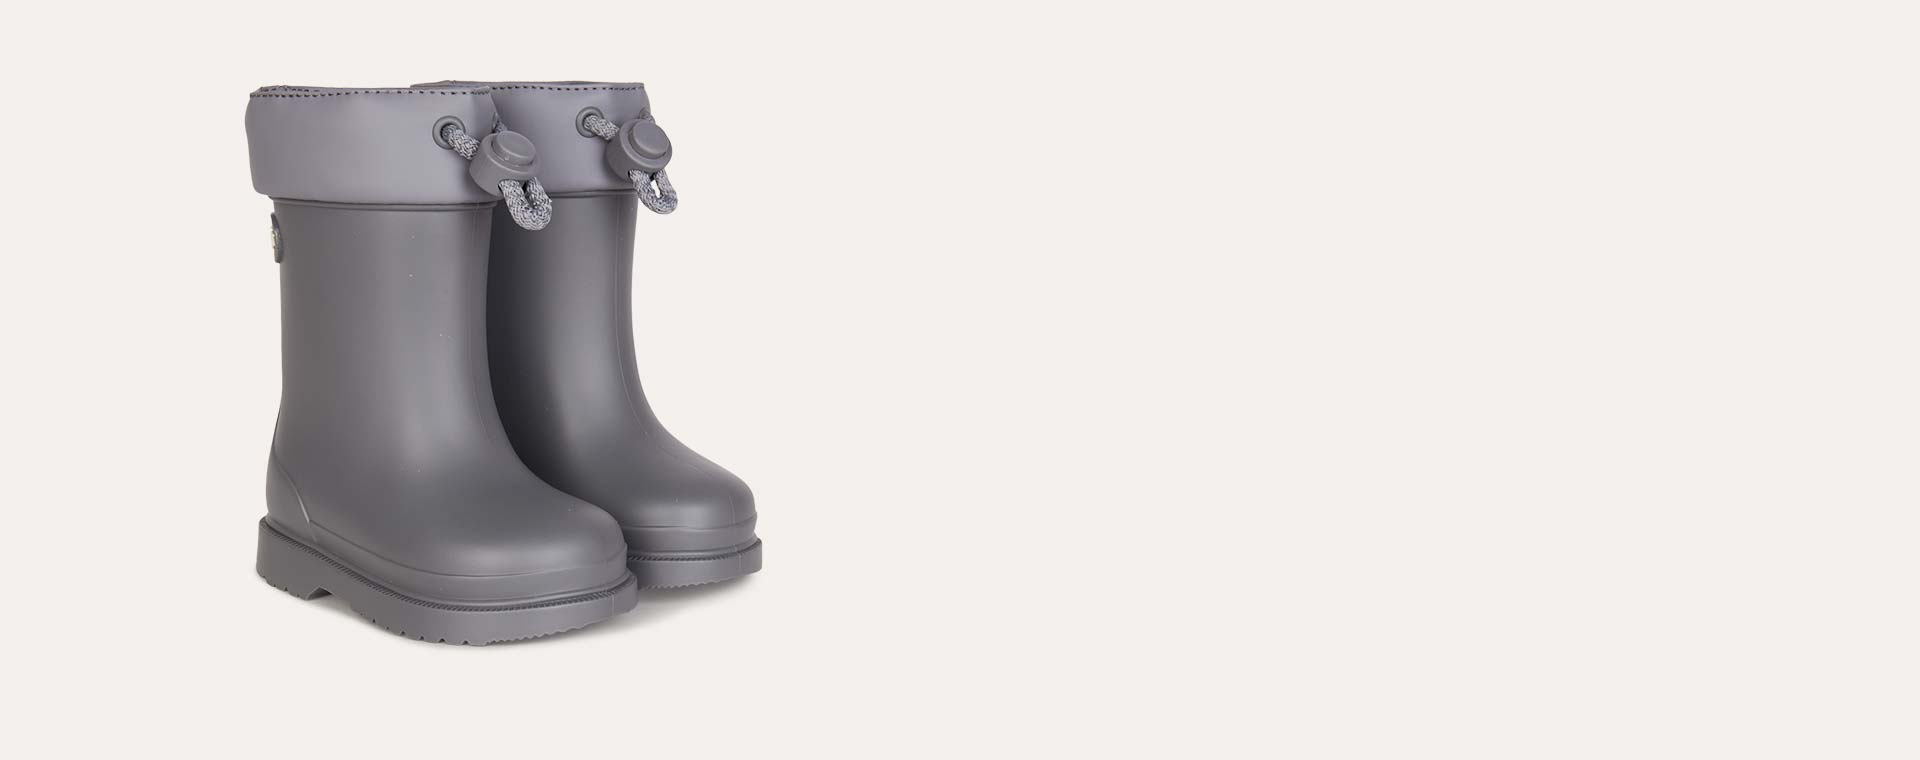 Grey igor Chufo Cuello Welly Boot